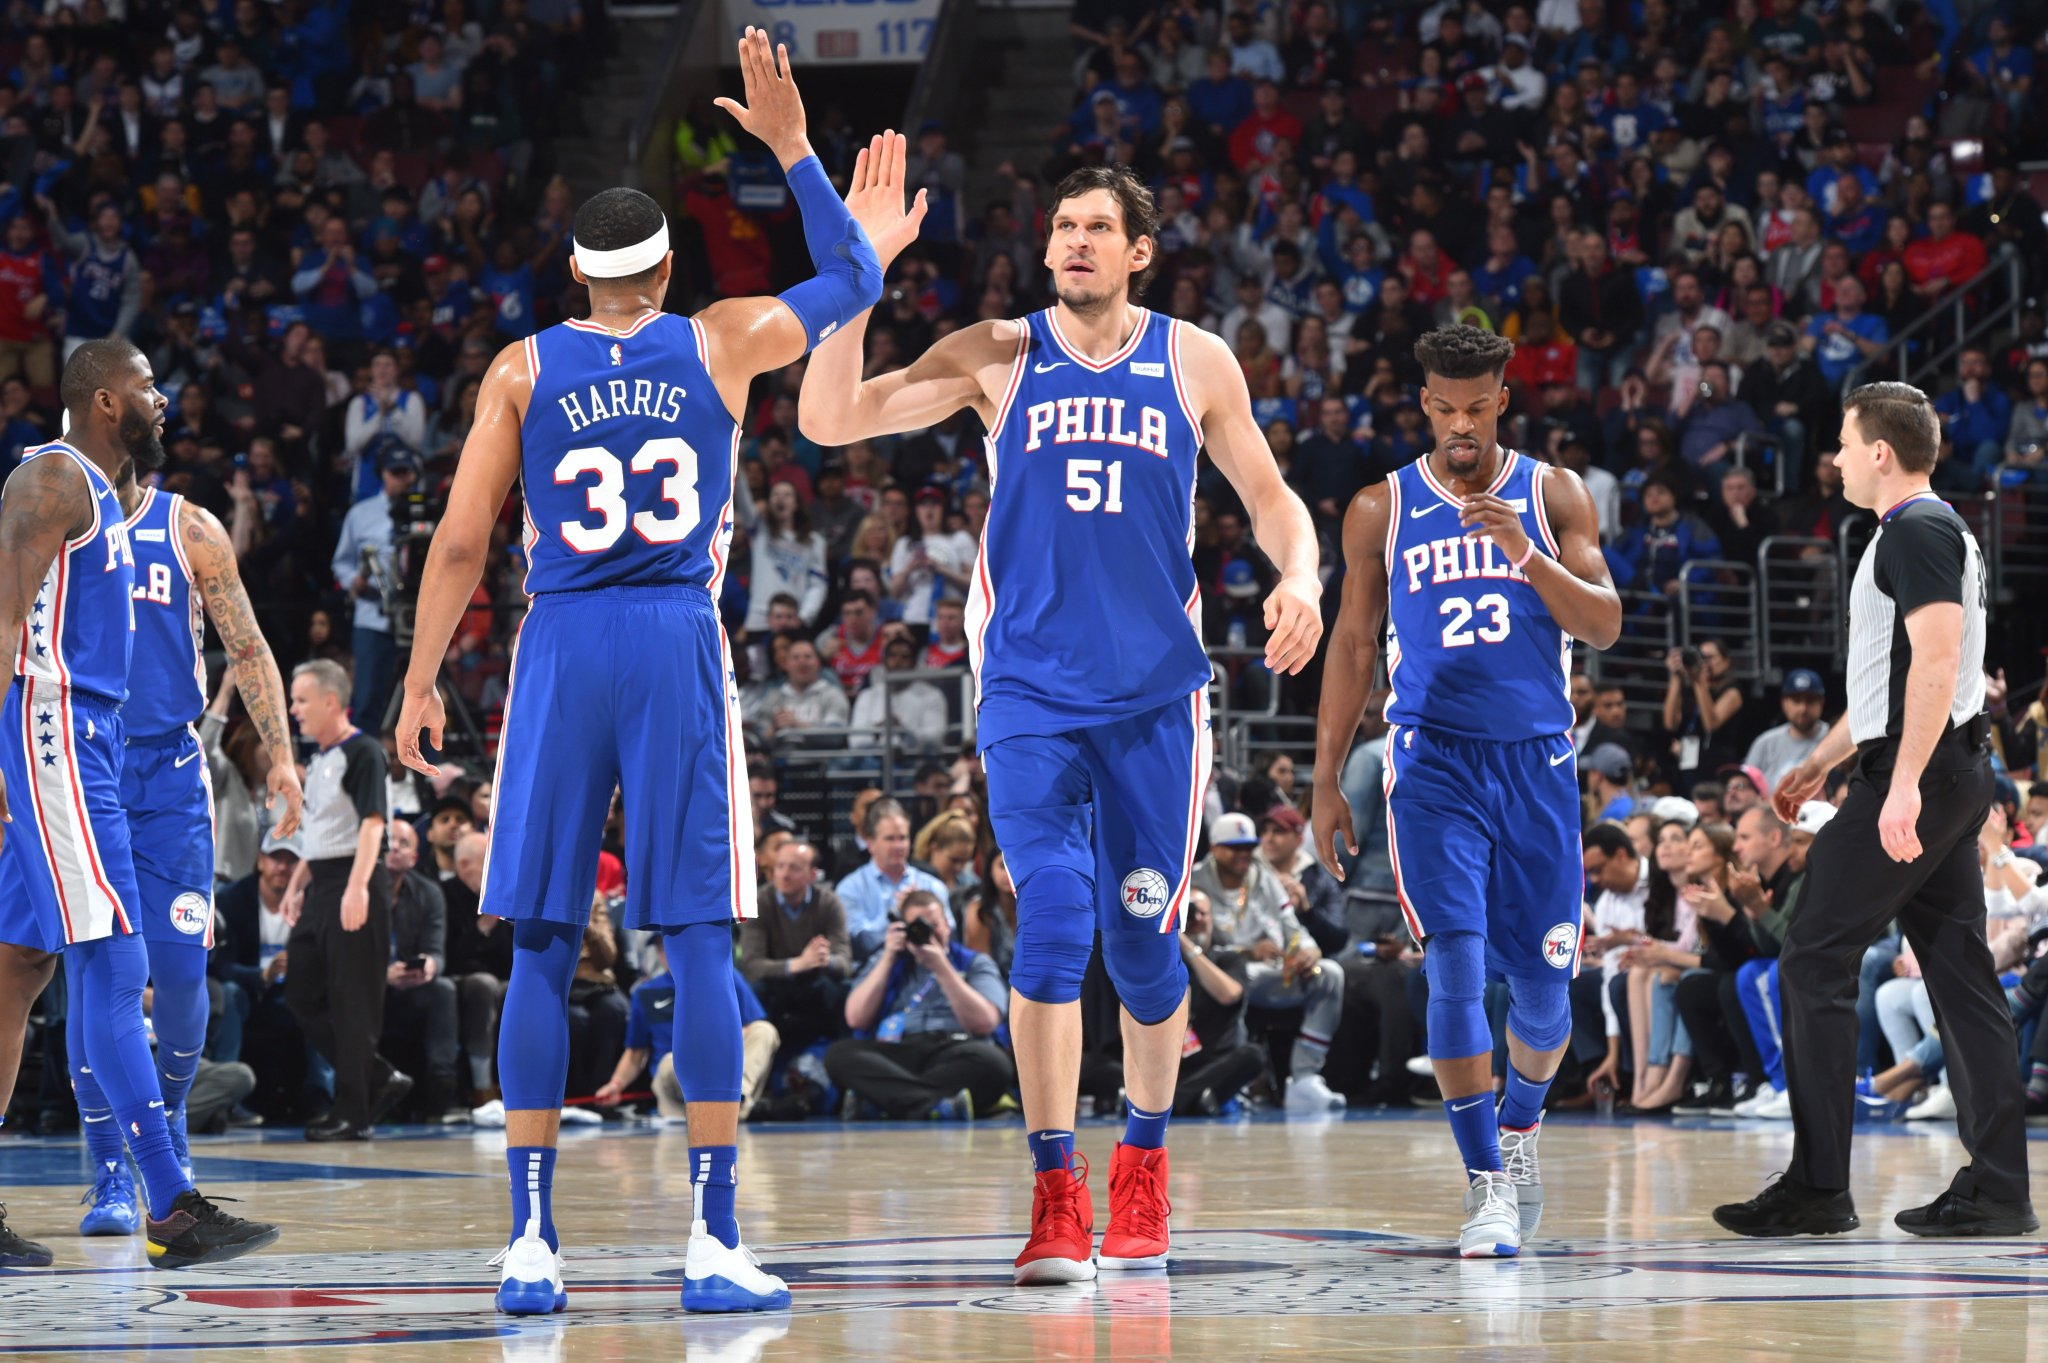 The @sixers are outscoring BKN 39-15 in the 3Q! #NBAPlayoffs   #PhilaUnite 104 #WeGoHard 79  ��: @NBAonTNT https://t.co/piAuGTRVie